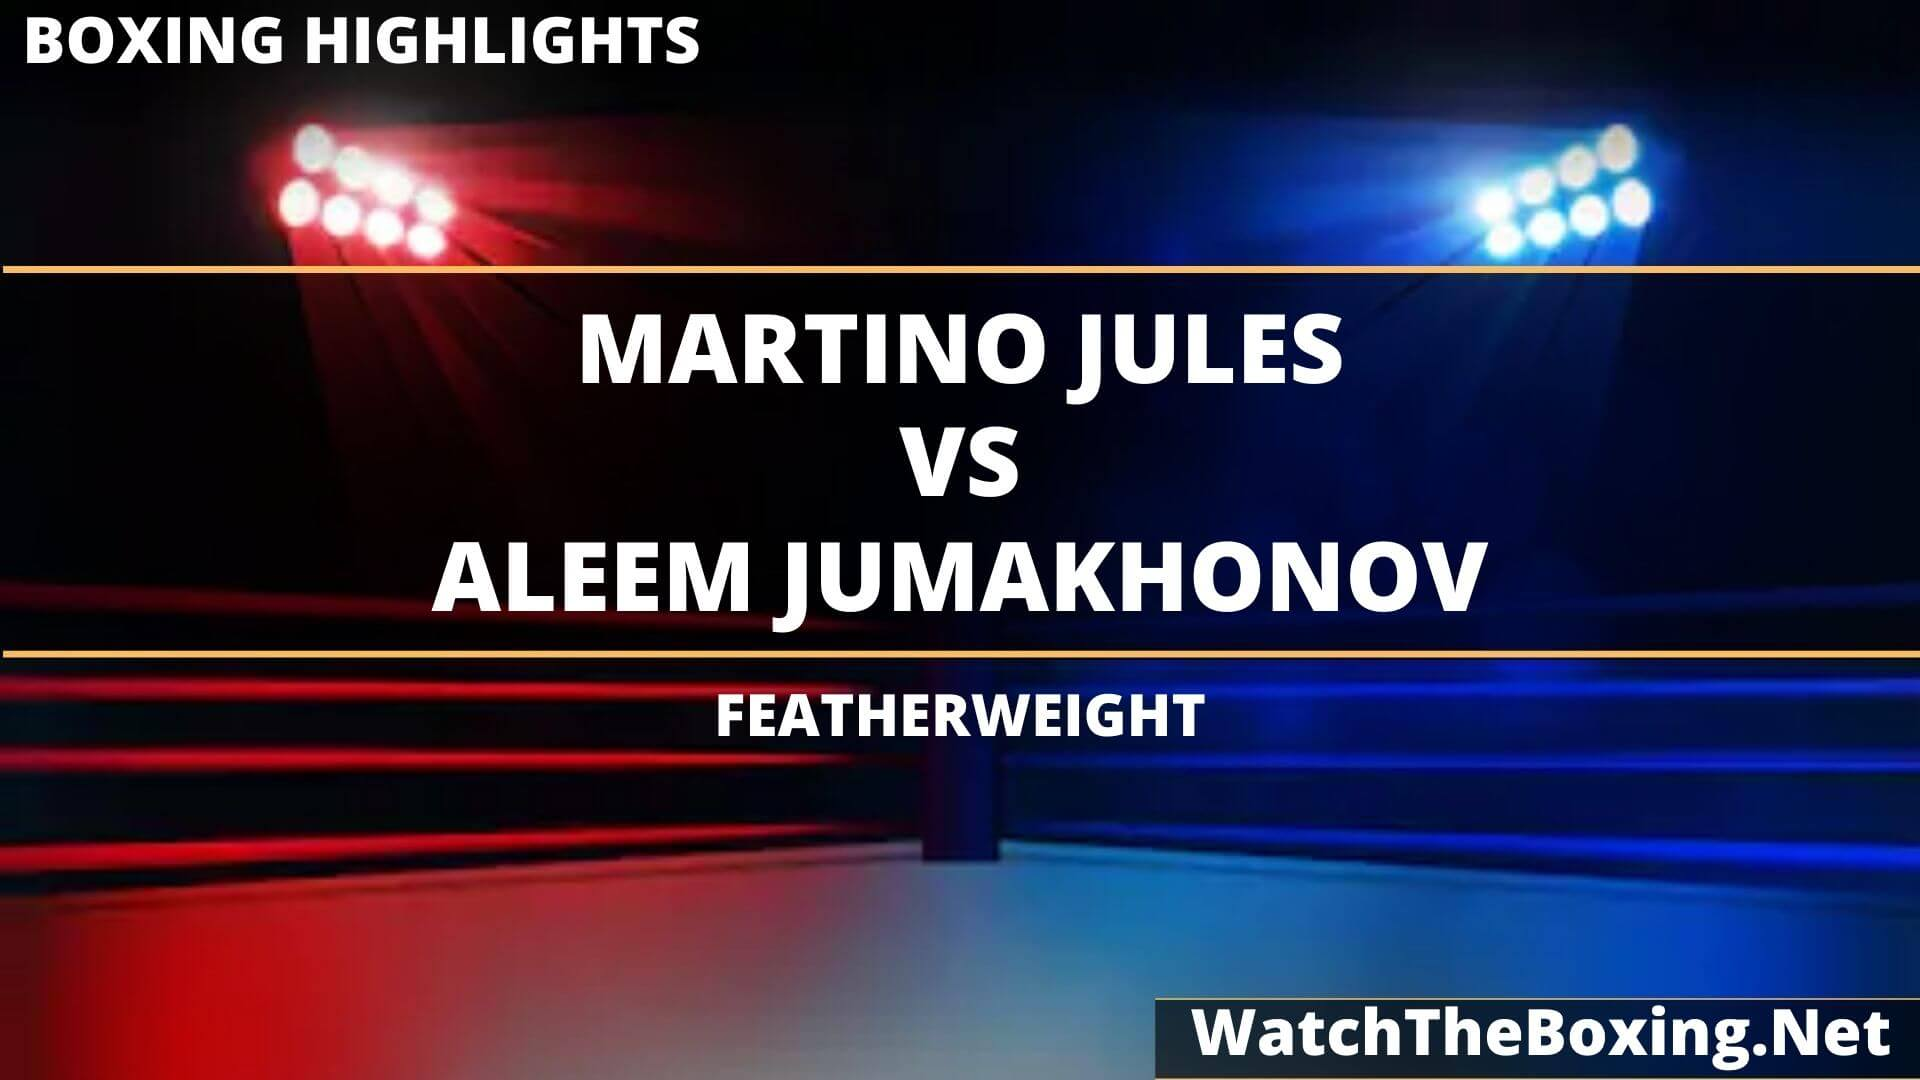 Martino Jules Vs Aleem Jumakhonov Highlights 2020 Featherweight